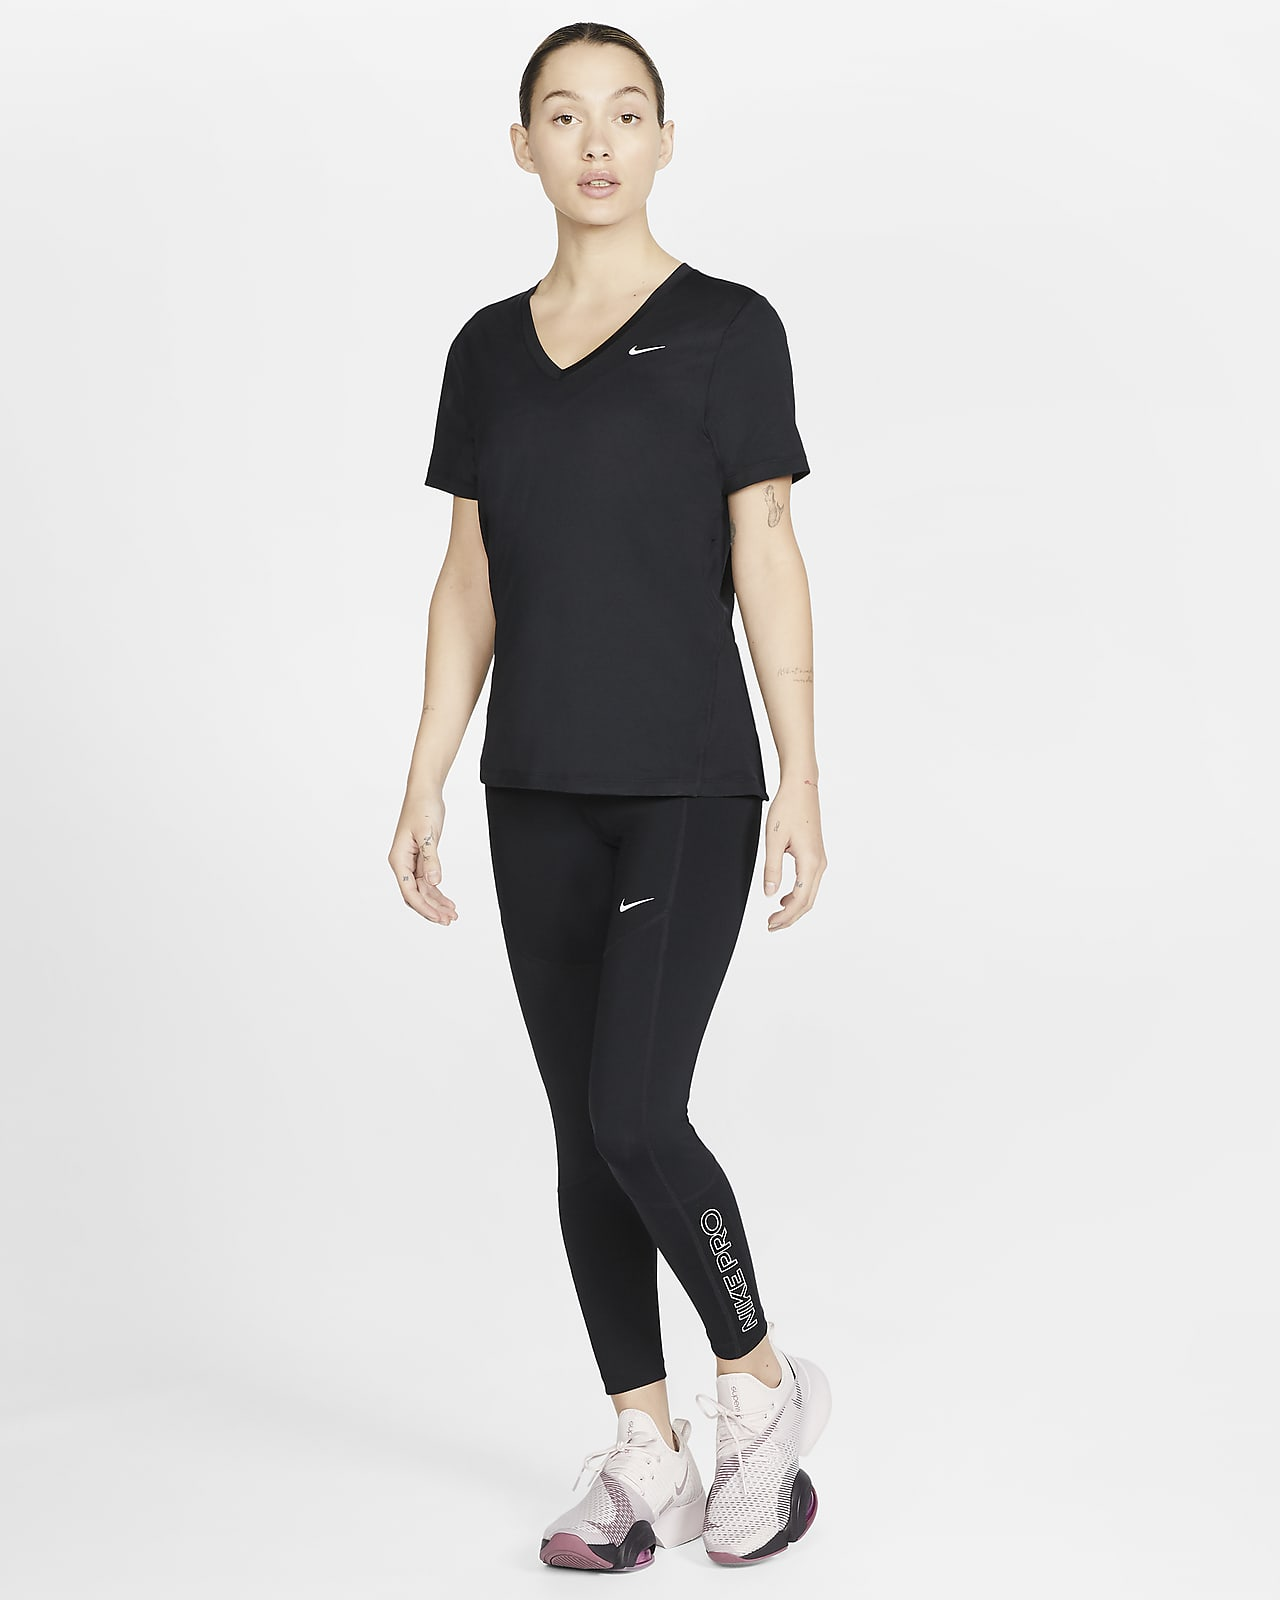 Compuesto llorar recompensa  Nike Victory Women's Short-Sleeve Training Top. Nike LU